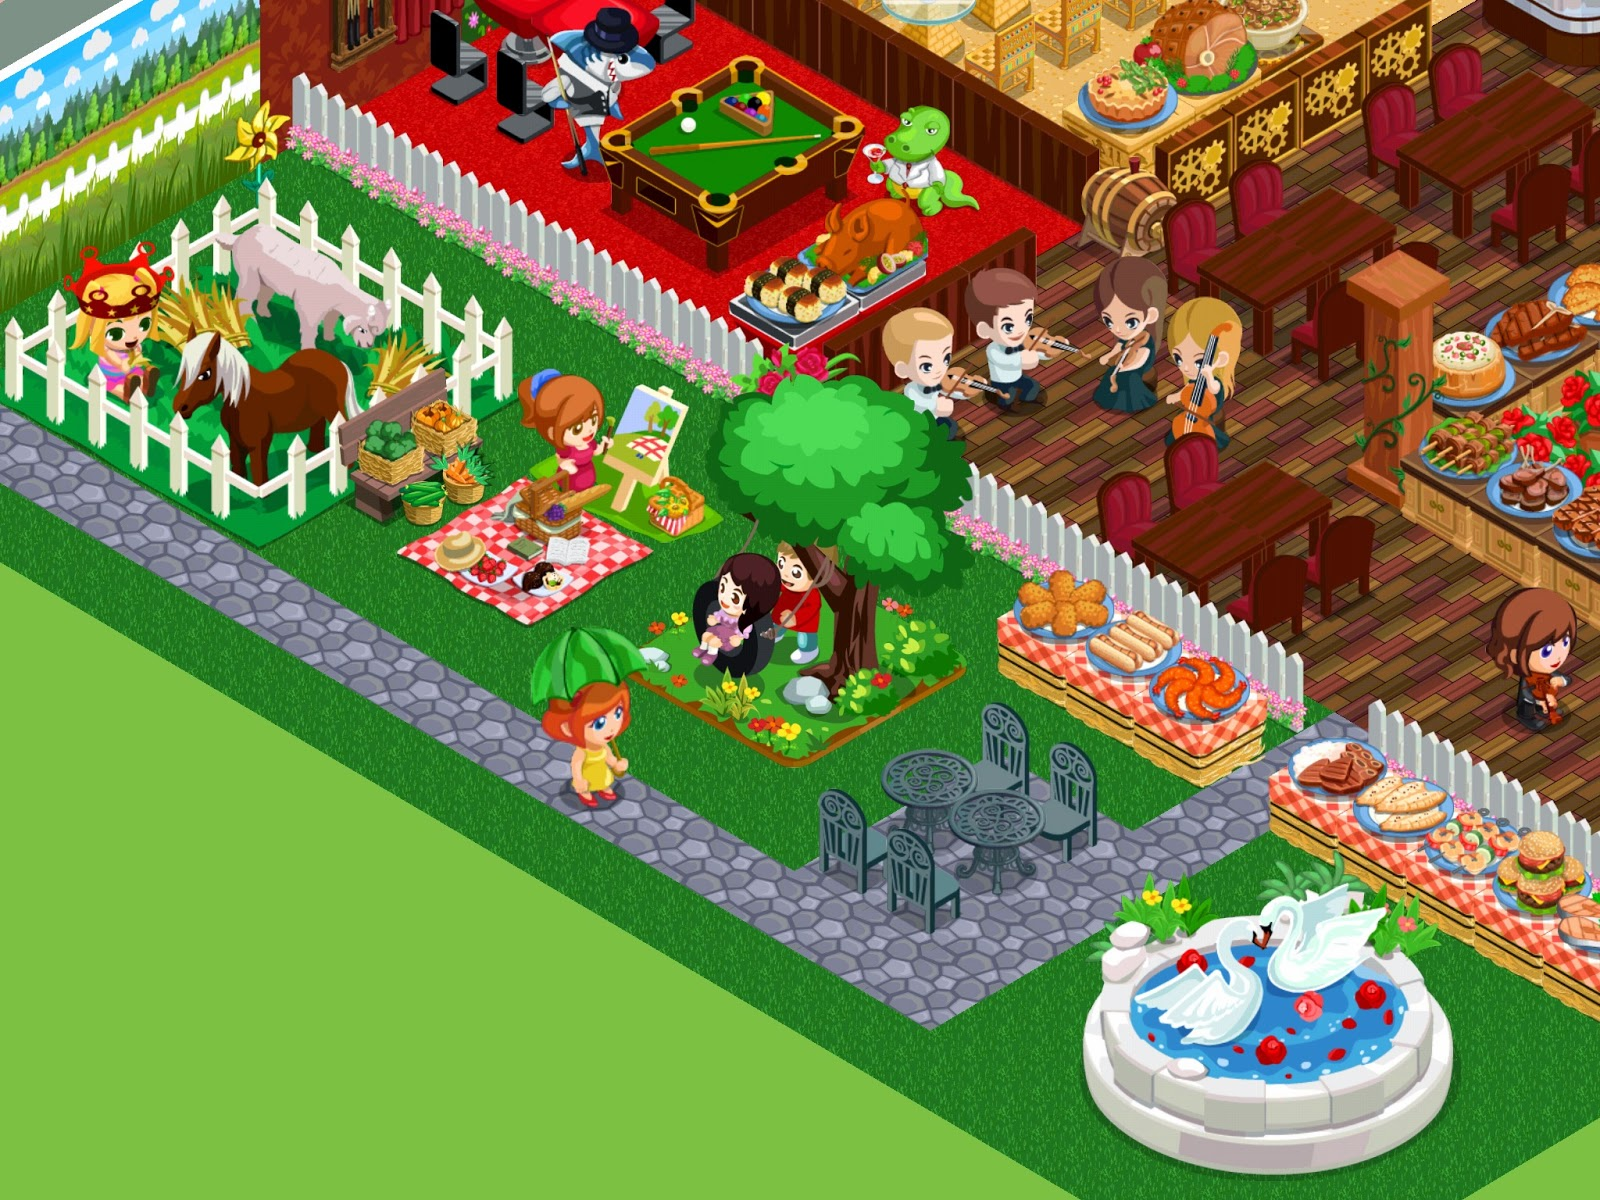 Restaurant Story Adventures: Game update: 20/08/14